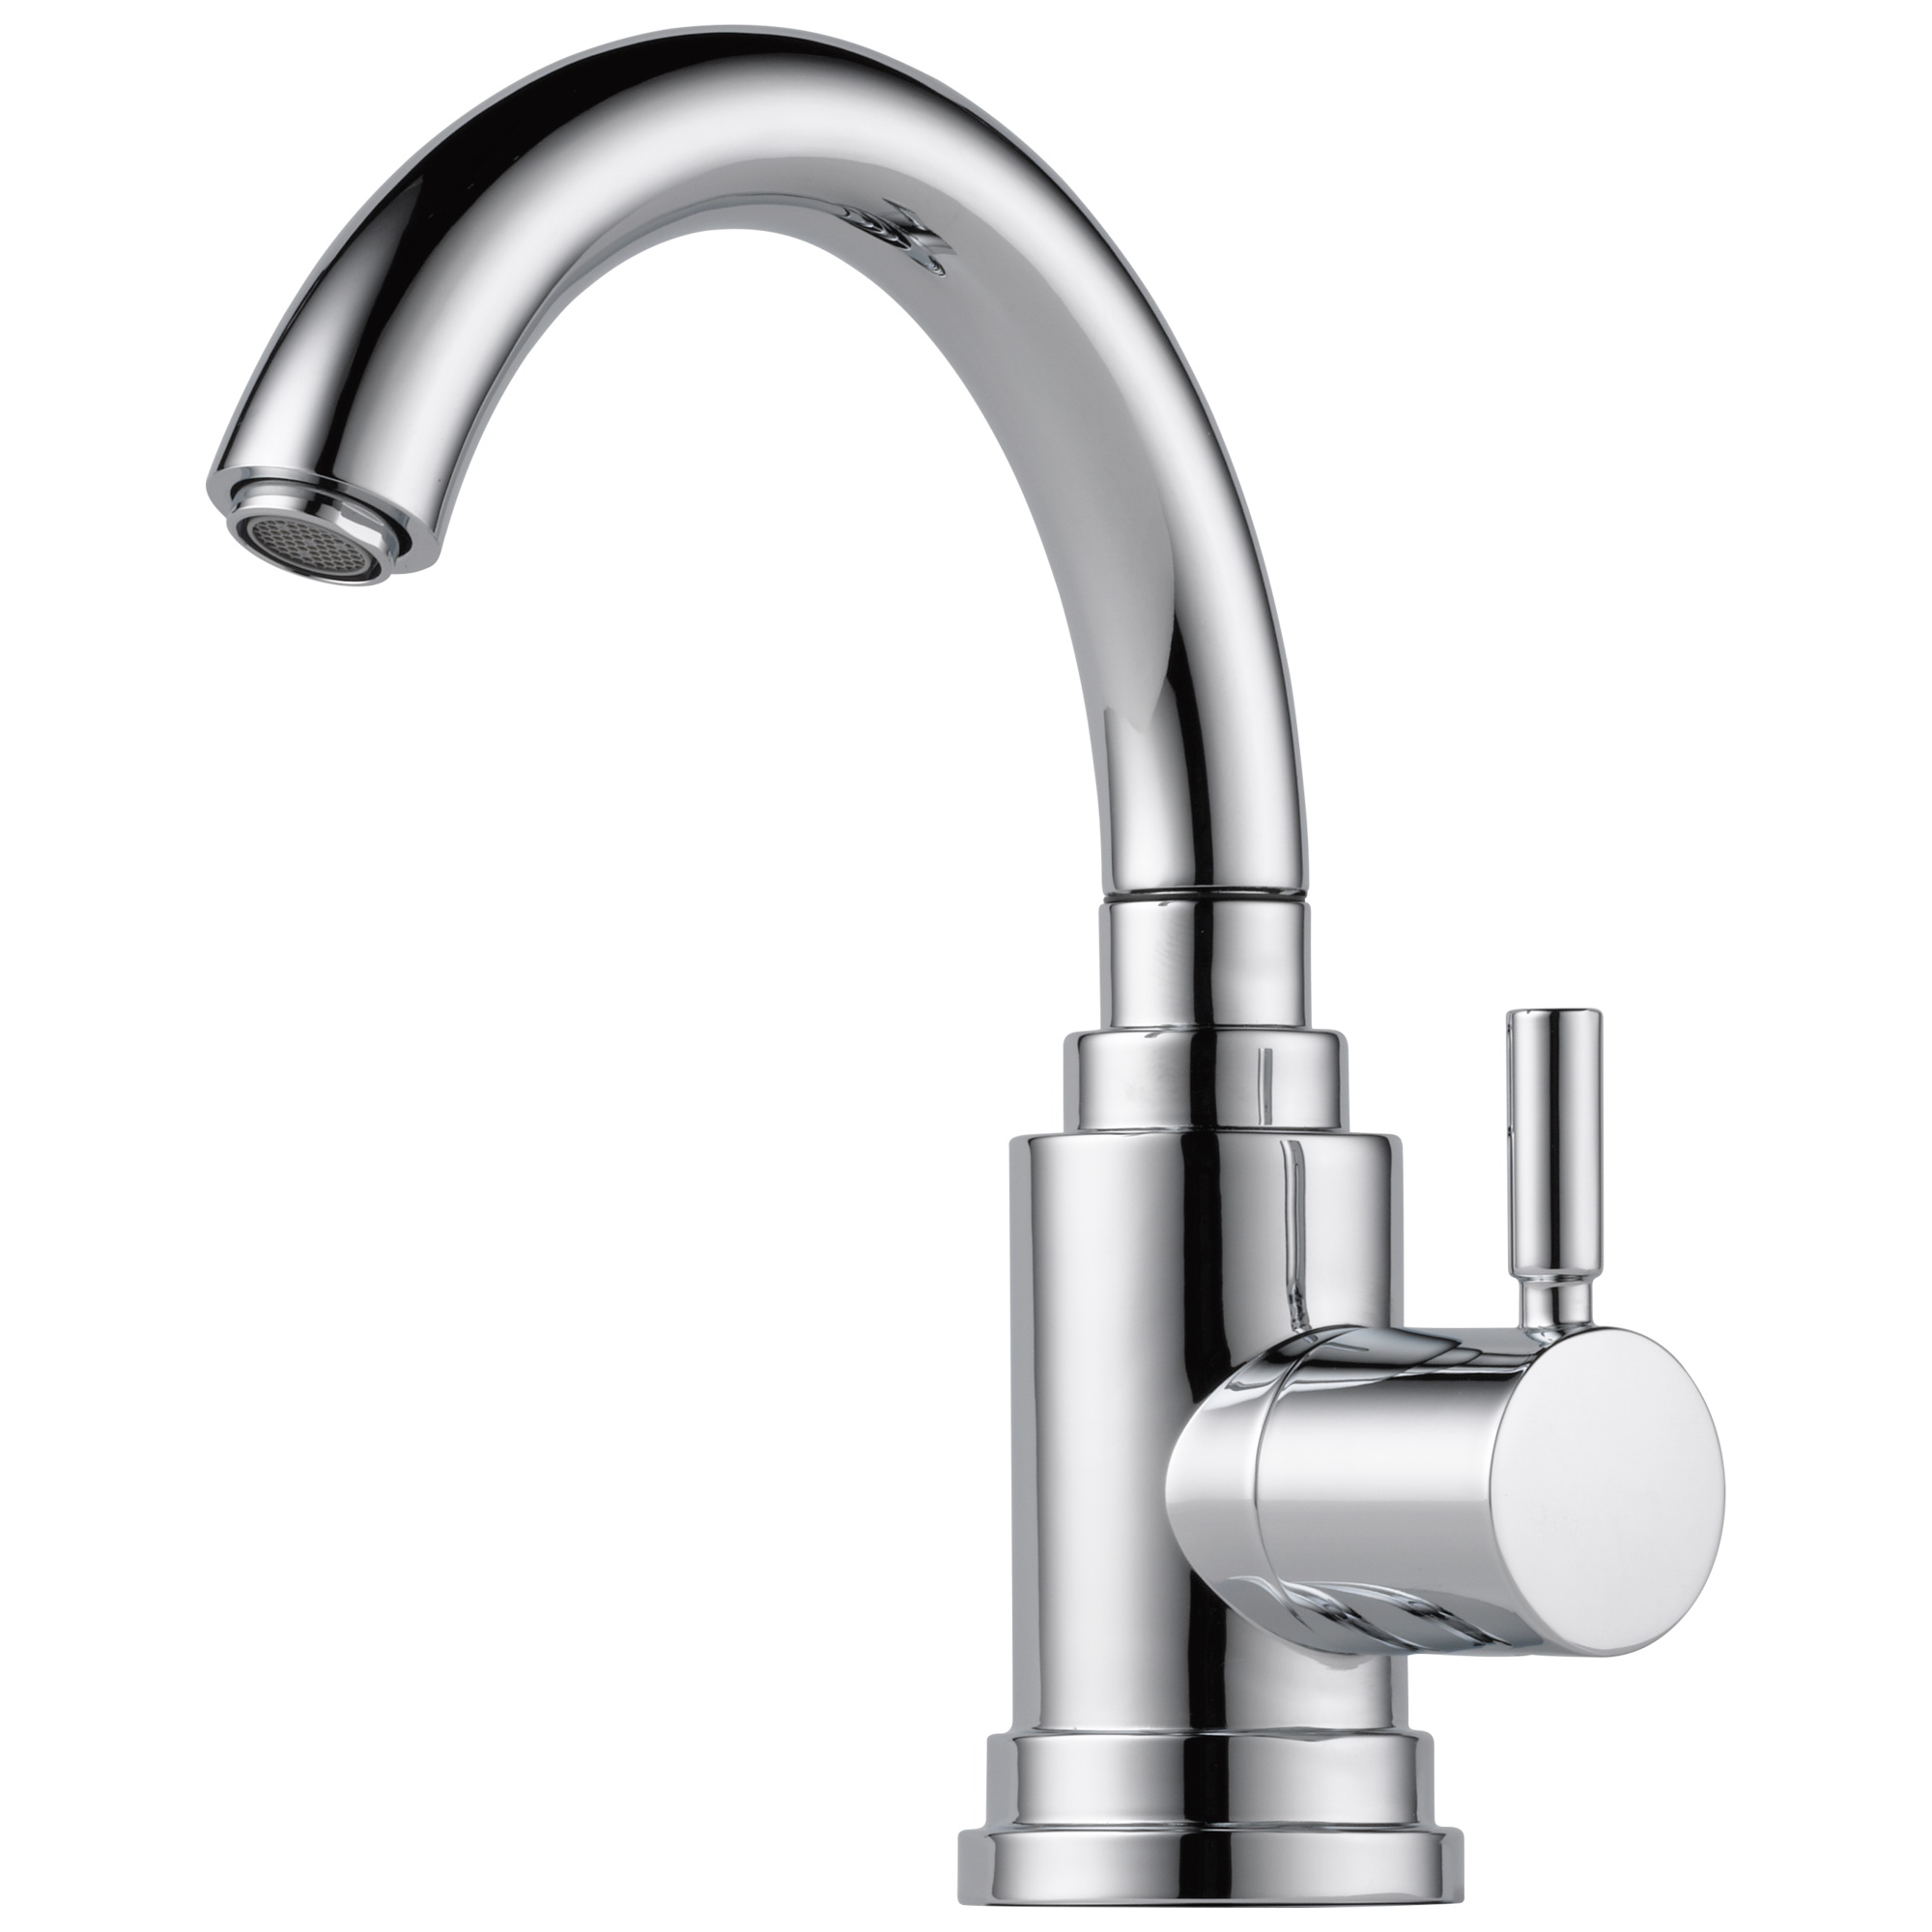 faucets faucet lead free purifier product system detail drinking filter beverage filtration water